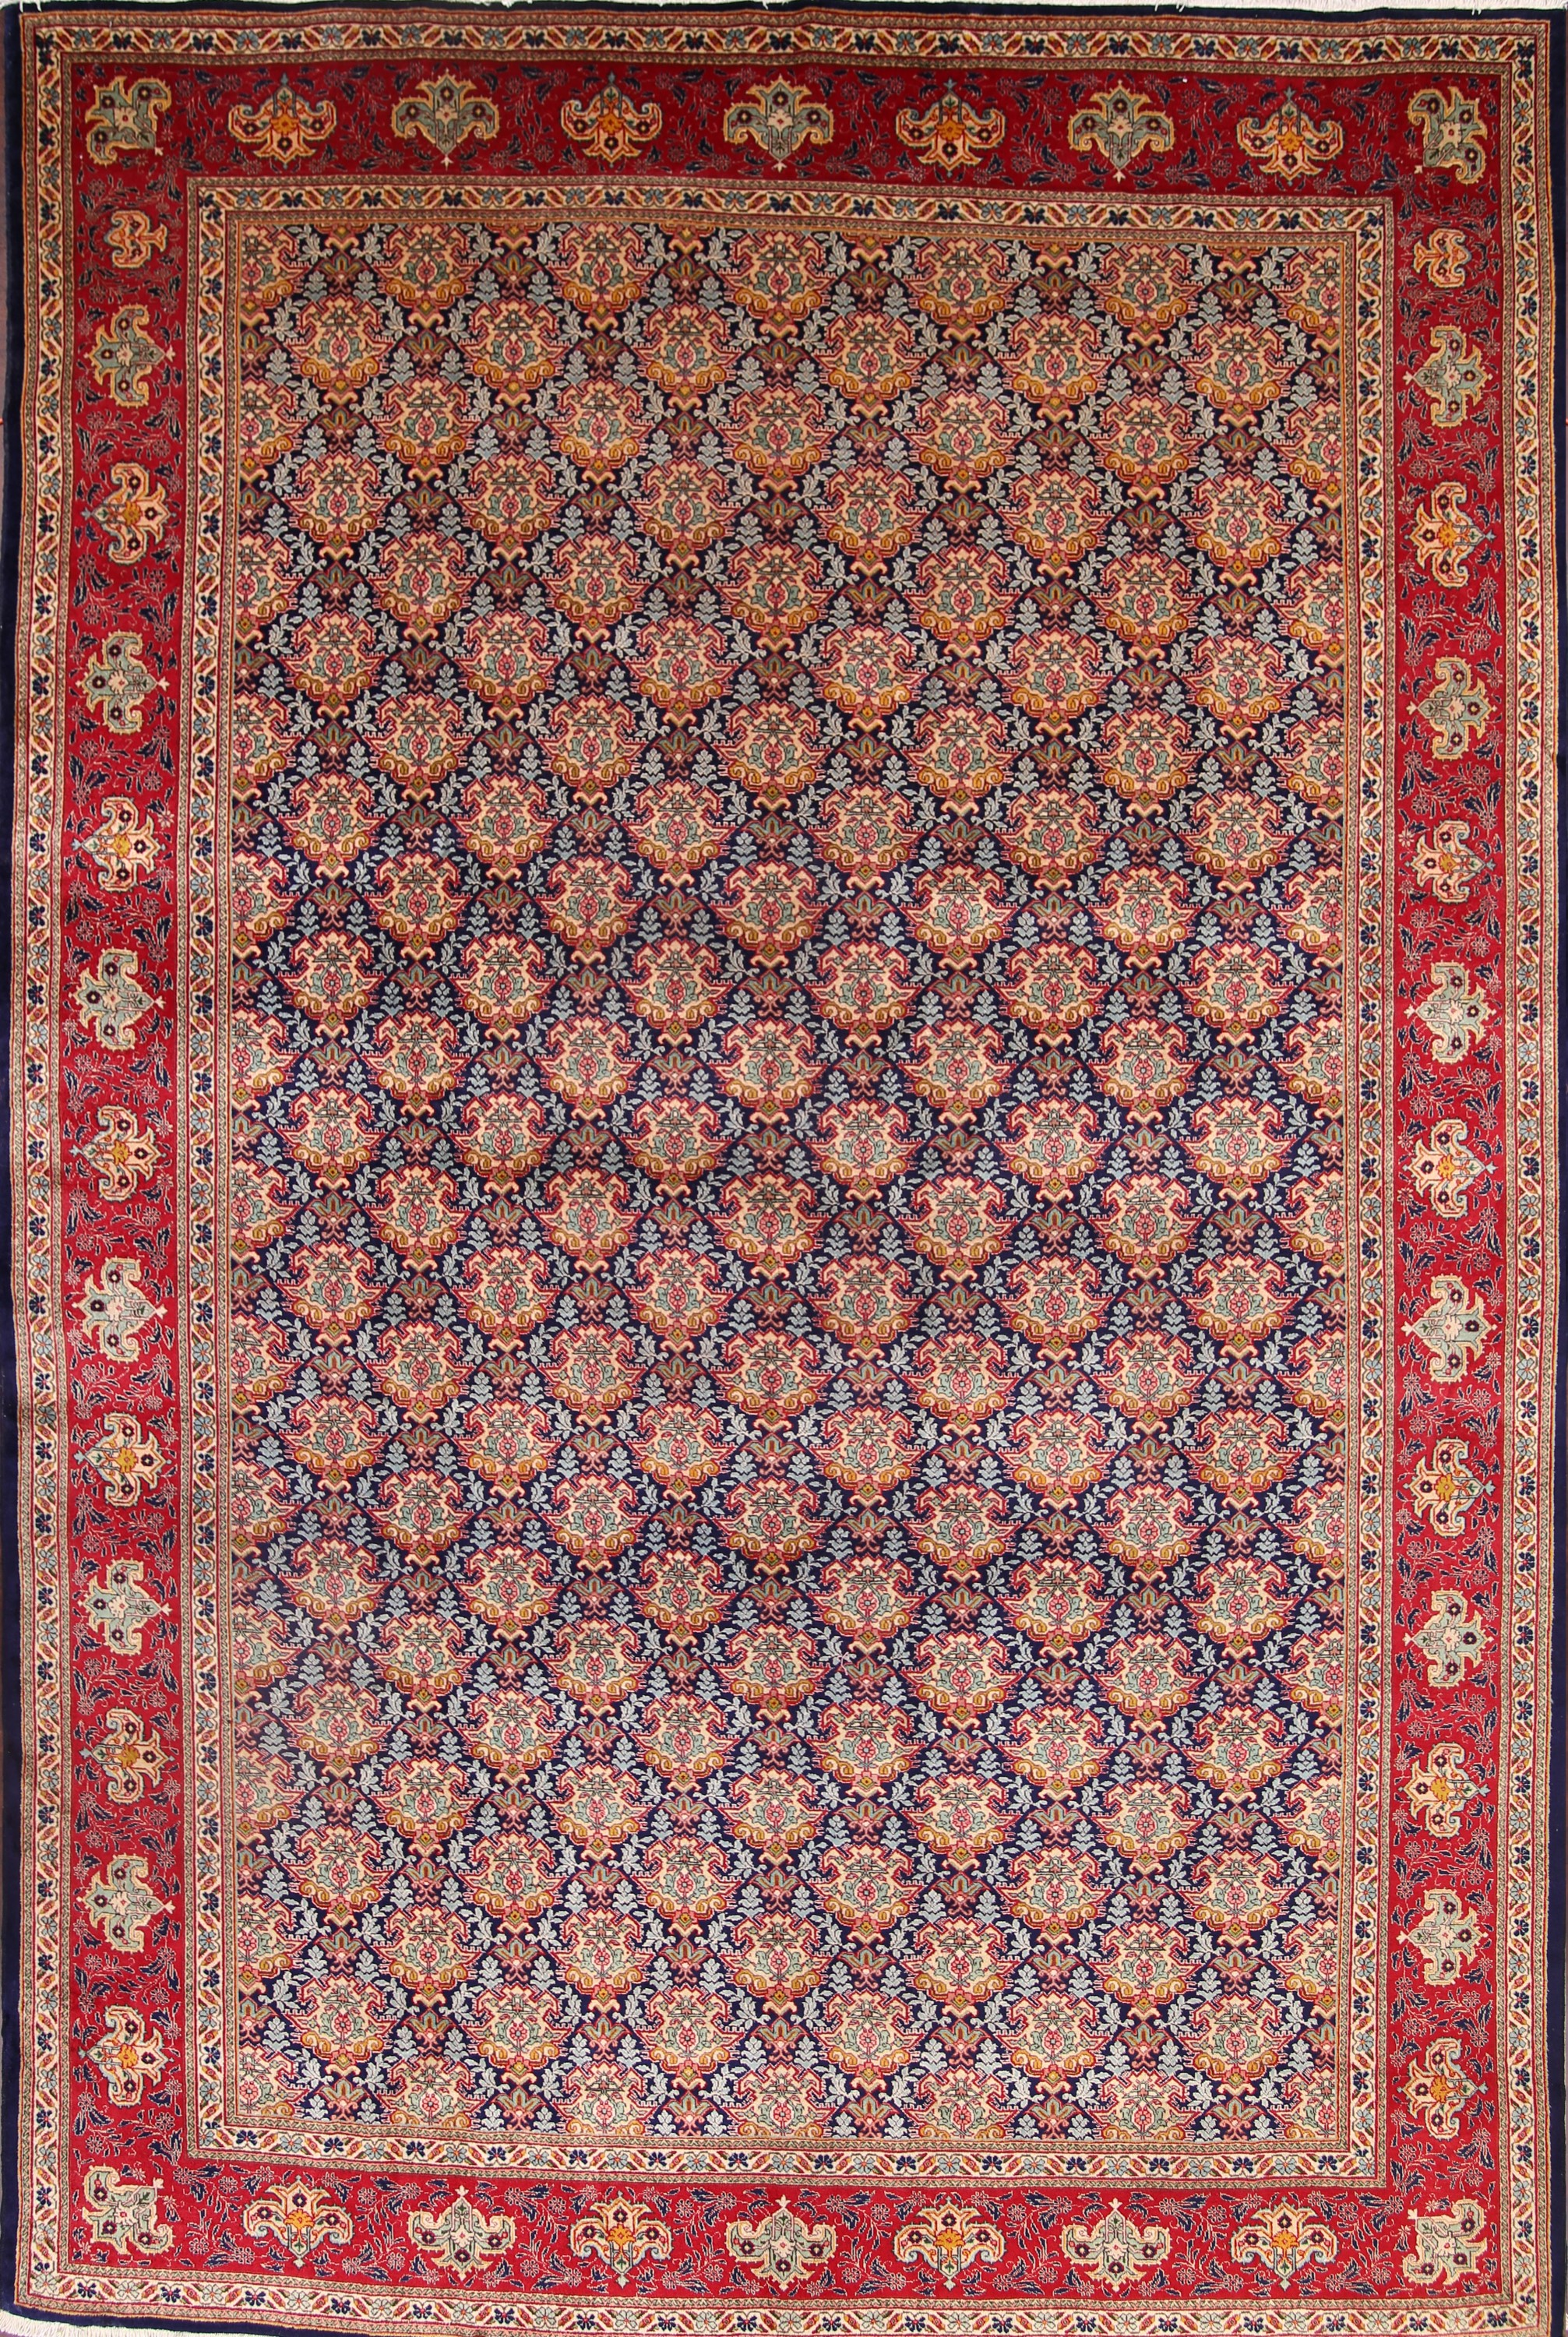 Palace Sized Floral 11x17 Tabriz Persian Area Rug